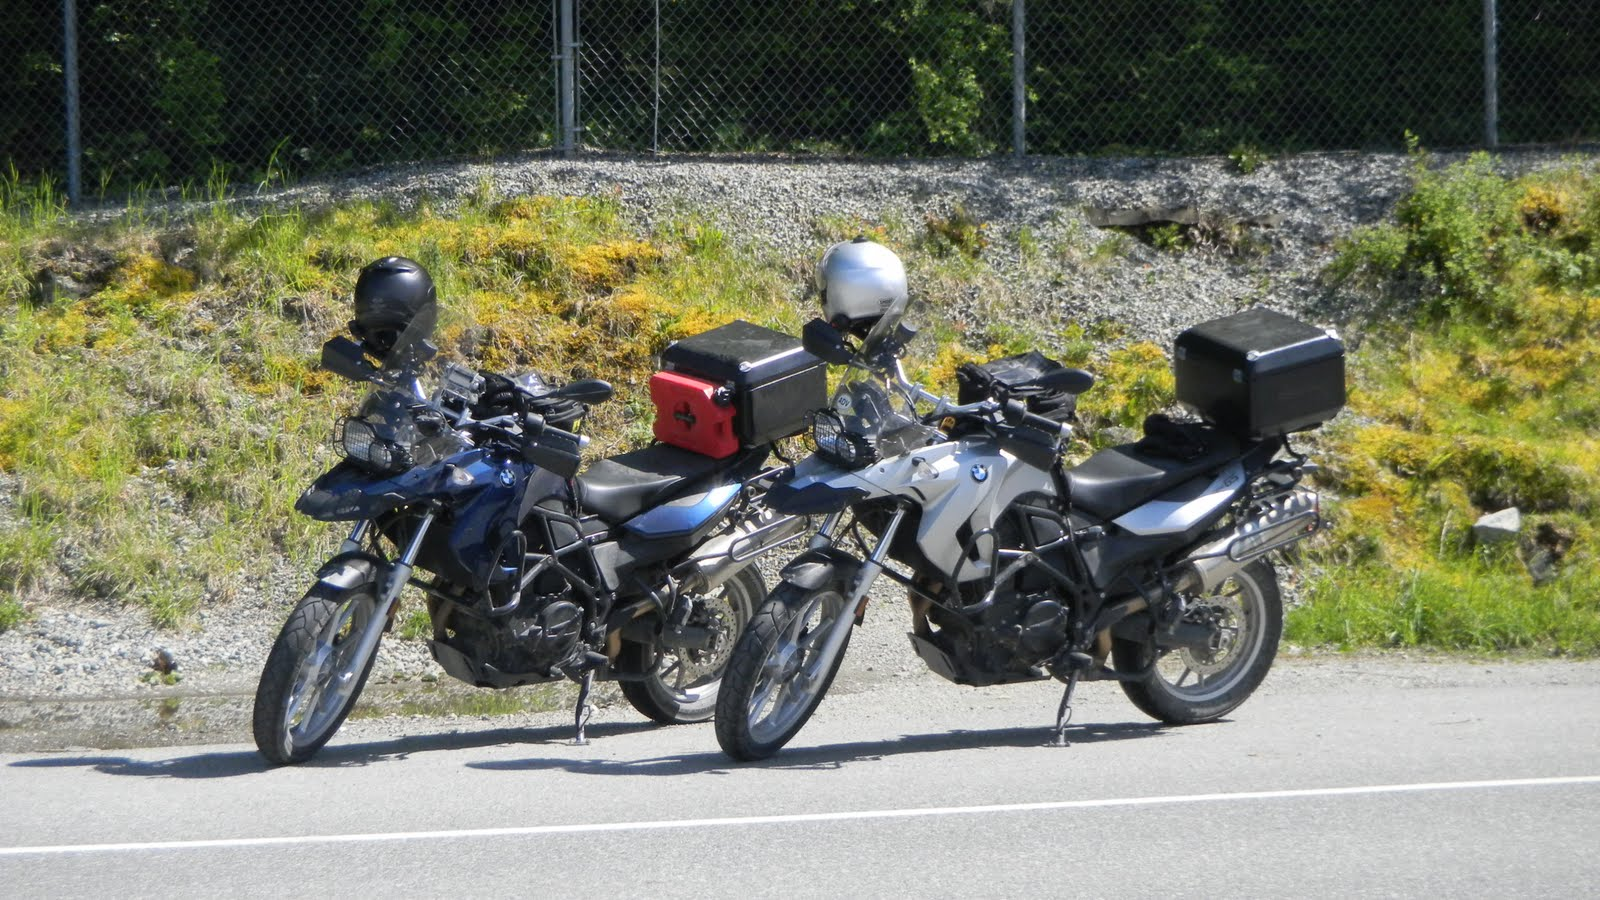 2010 BMW F650GS Cross Country Trip July August 2010 June 2010